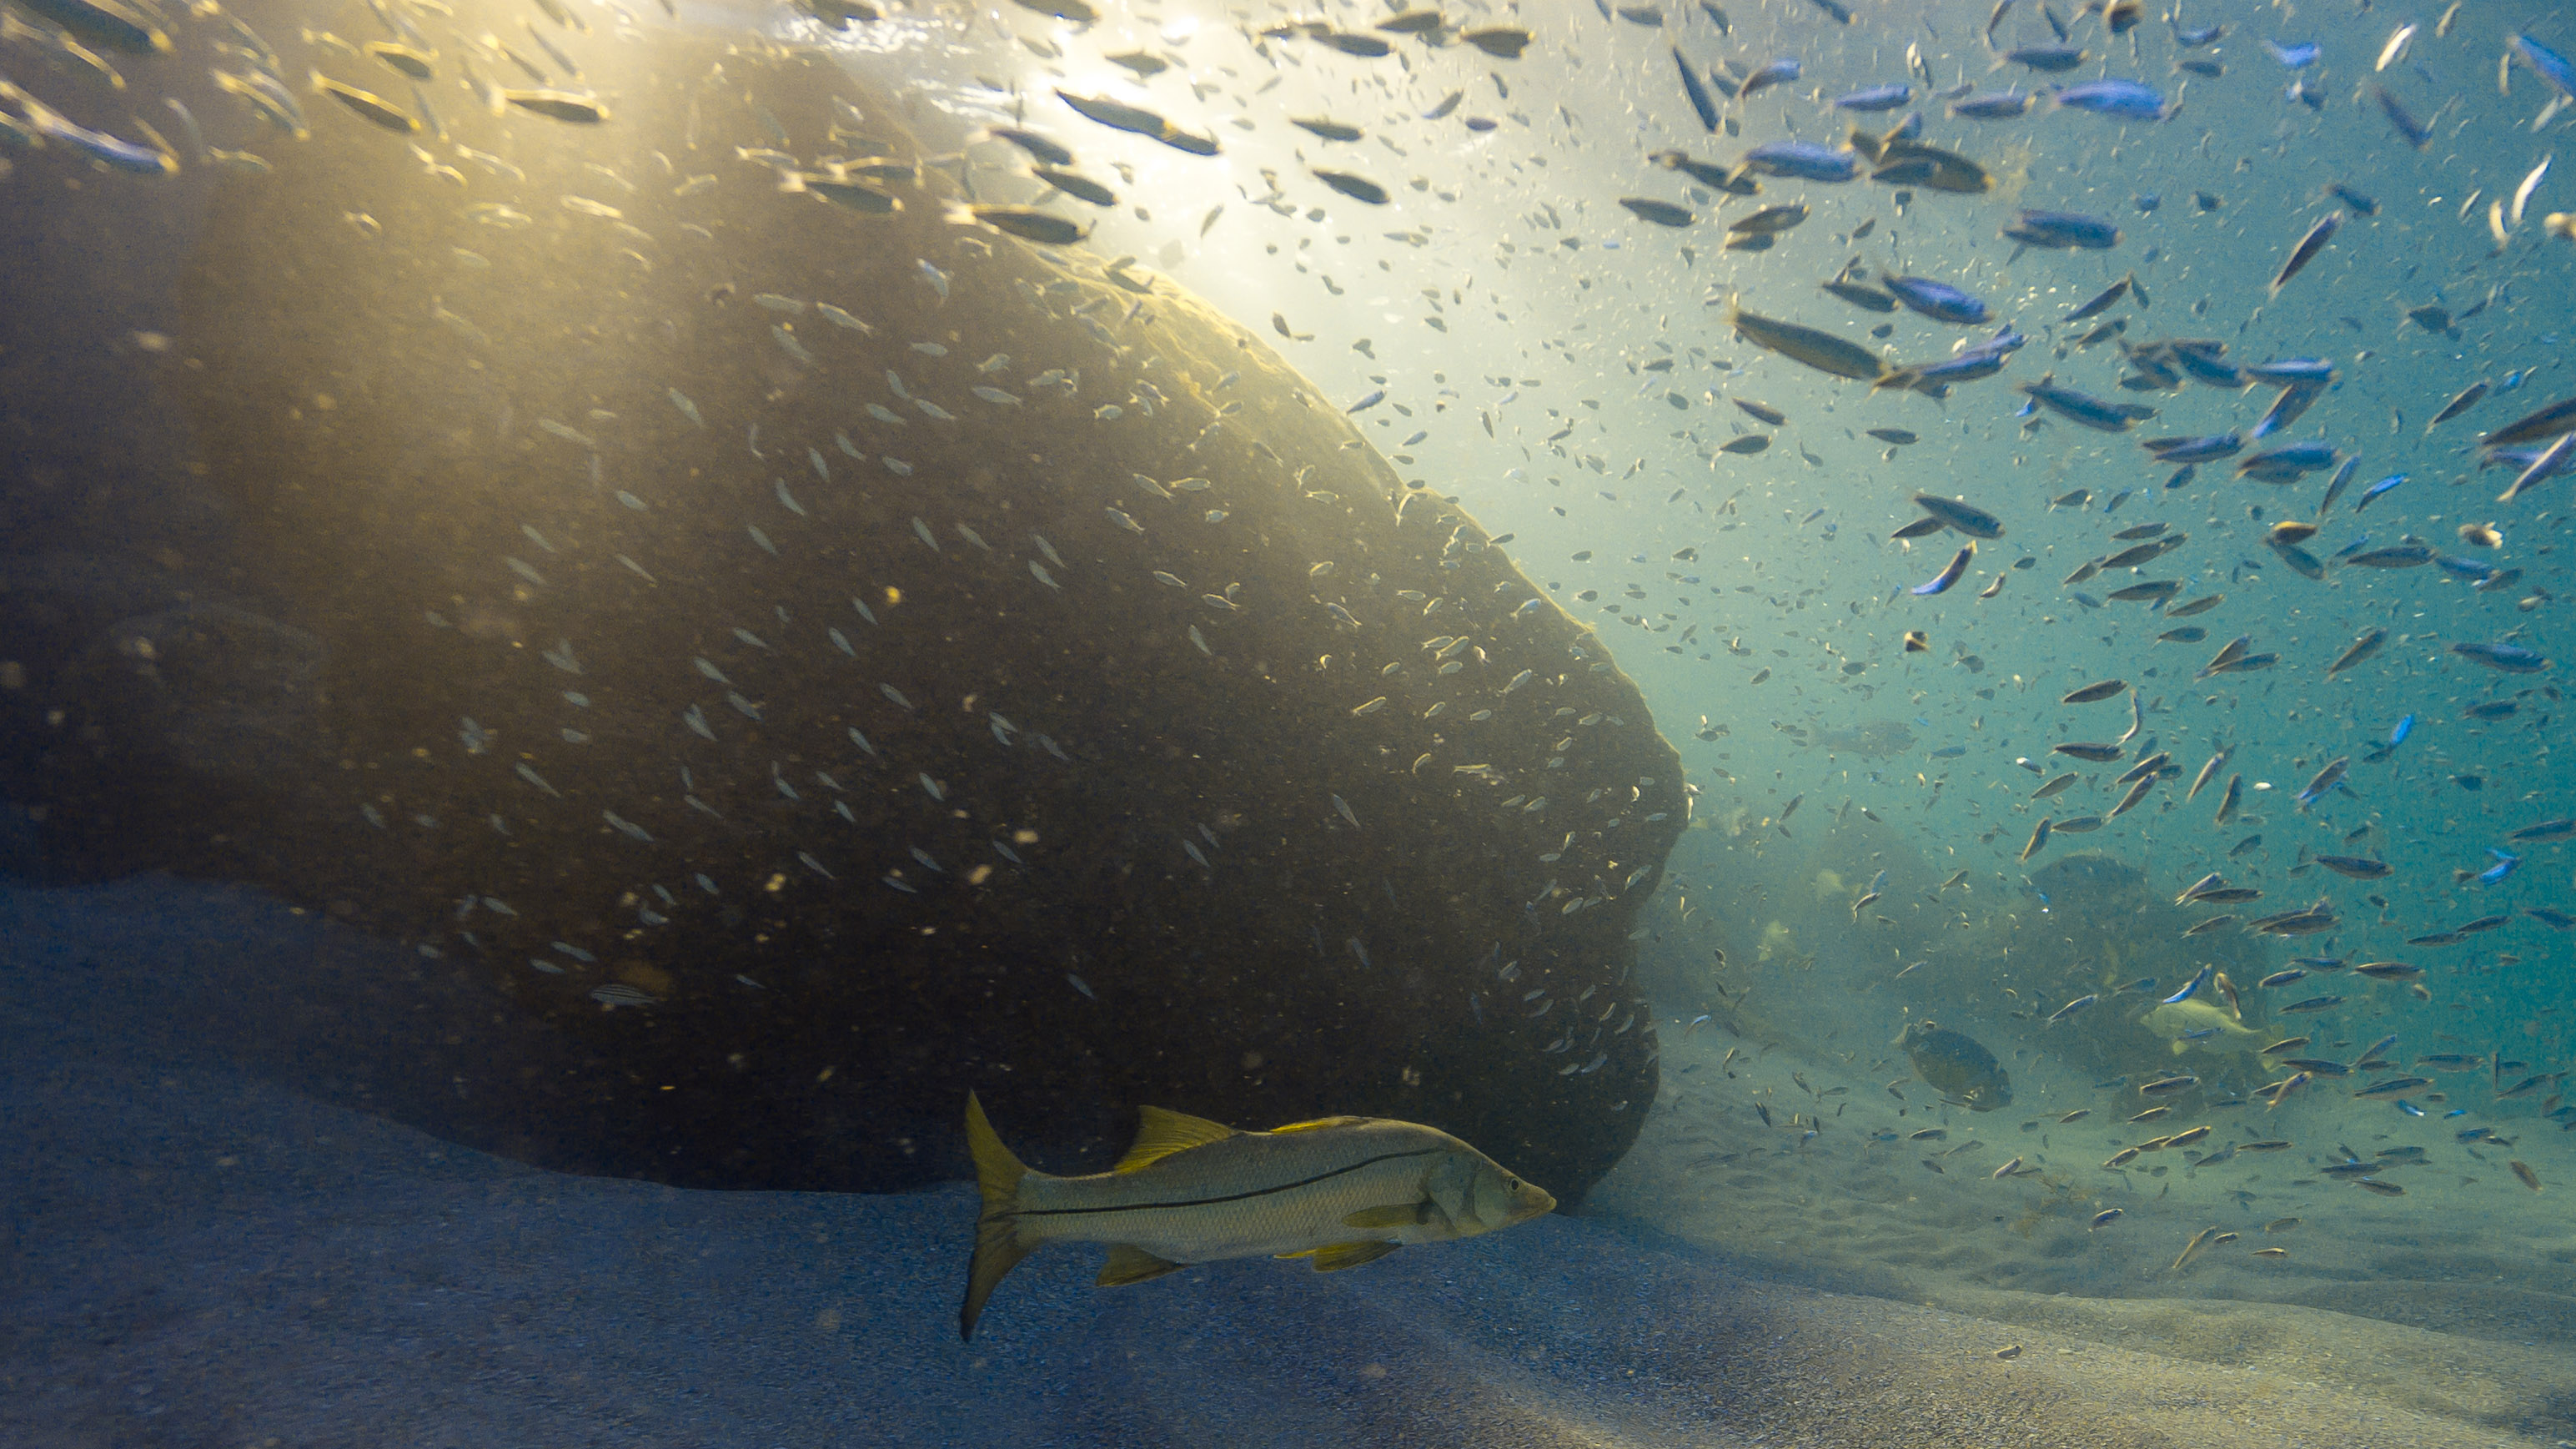 A common snook swims beside jetty rocks as forage fish, including pilchards, feed on sun-nurtured microscopic plants. These small fish, rich sources of omega-3 fatty-acids and proteins, essentially transfer the sun's energy into a form that predators can use to grow and reproduce. According to a 2012 study, baitfish are twice as valuable when left in the water as when caught commercially.